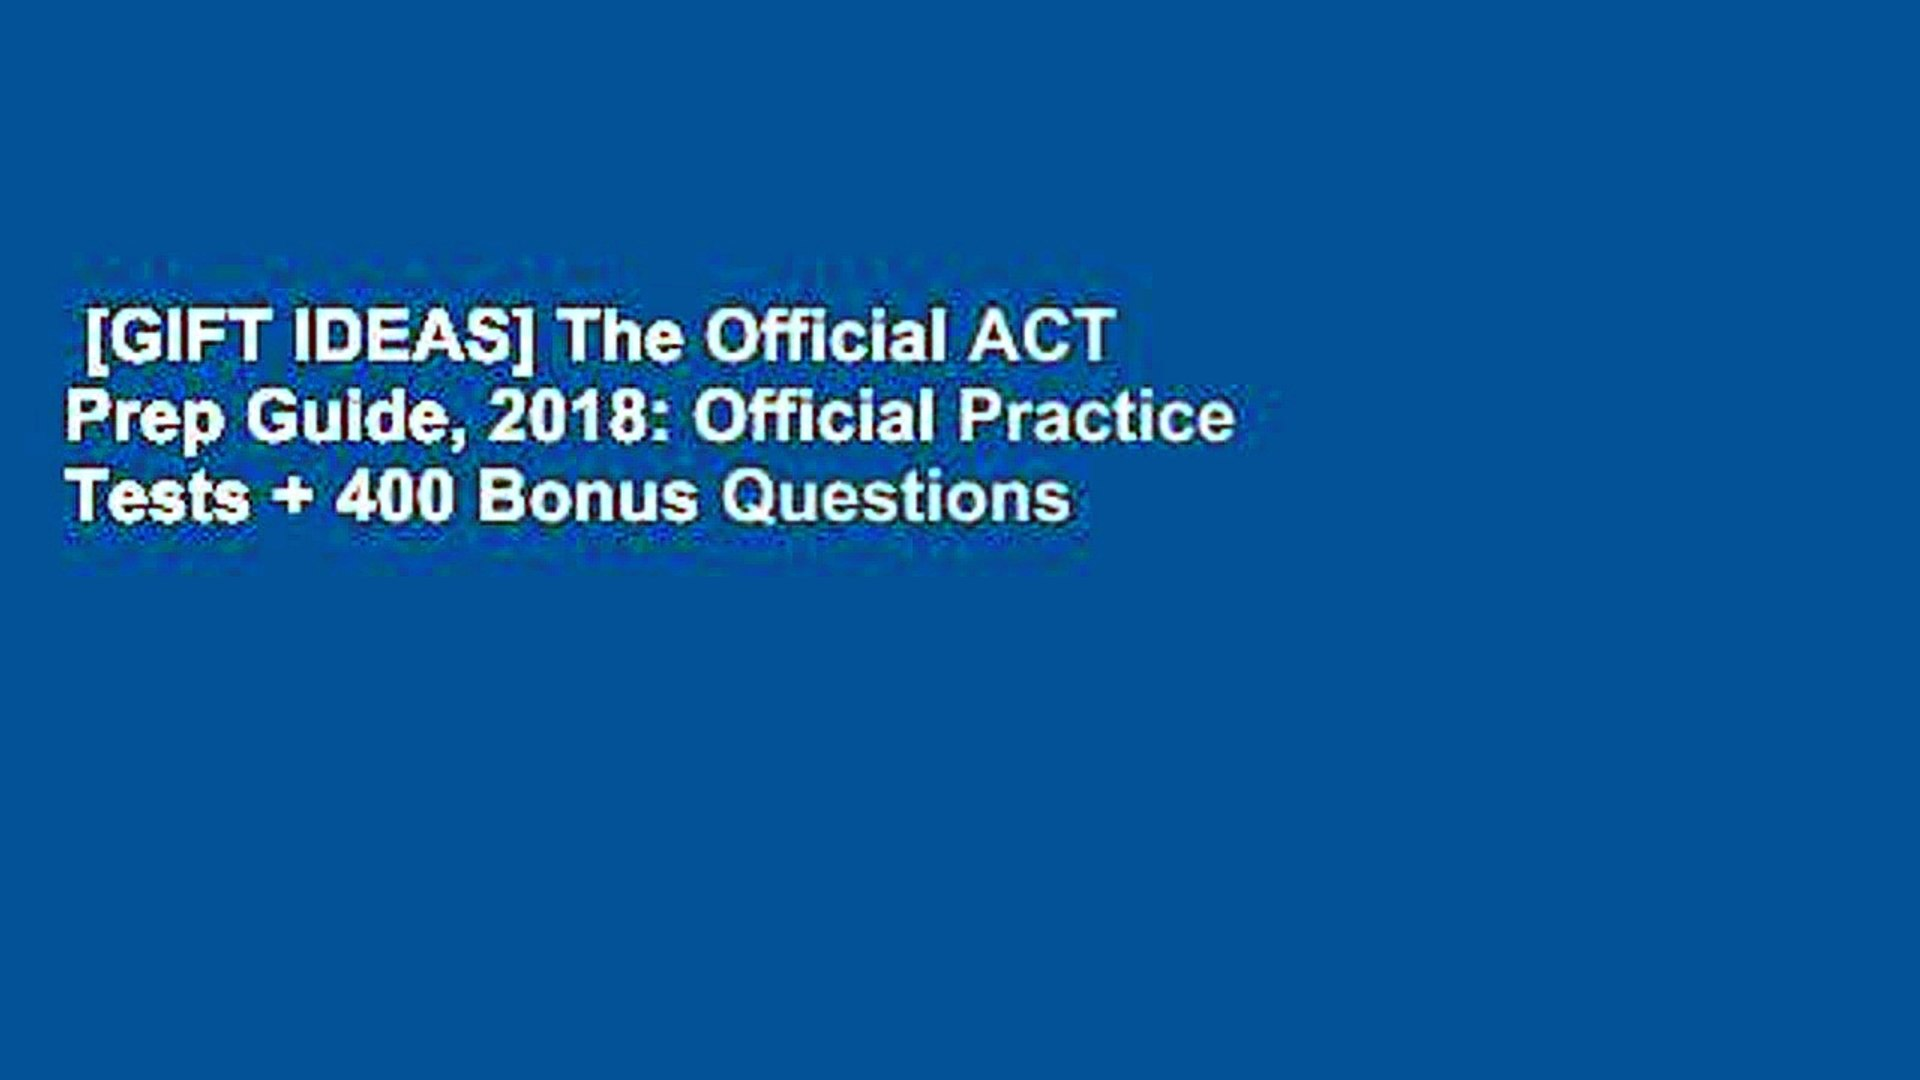 [GIFT IDEAS] The Official ACT Prep Guide, 2018: Official Practice Tests +  400 Bonus Questions